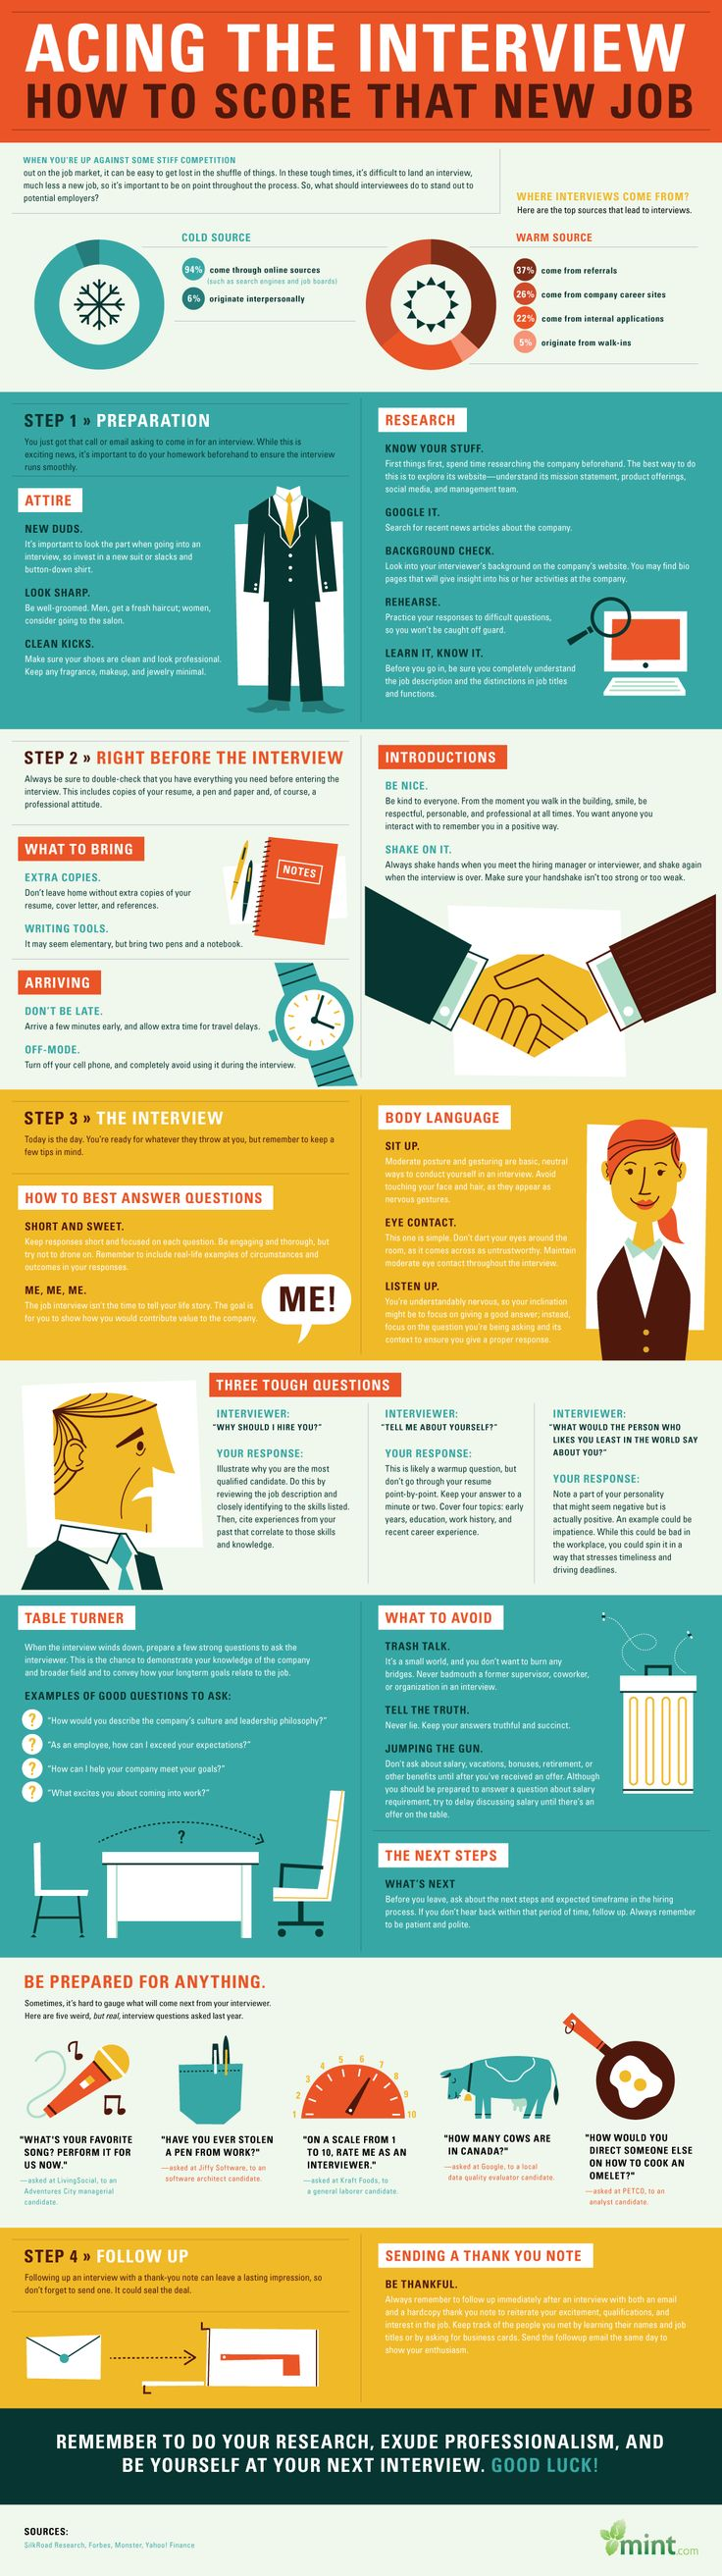 17 best ideas about interview guide interview mintlife blog personal finance news advice how to ace a job interview